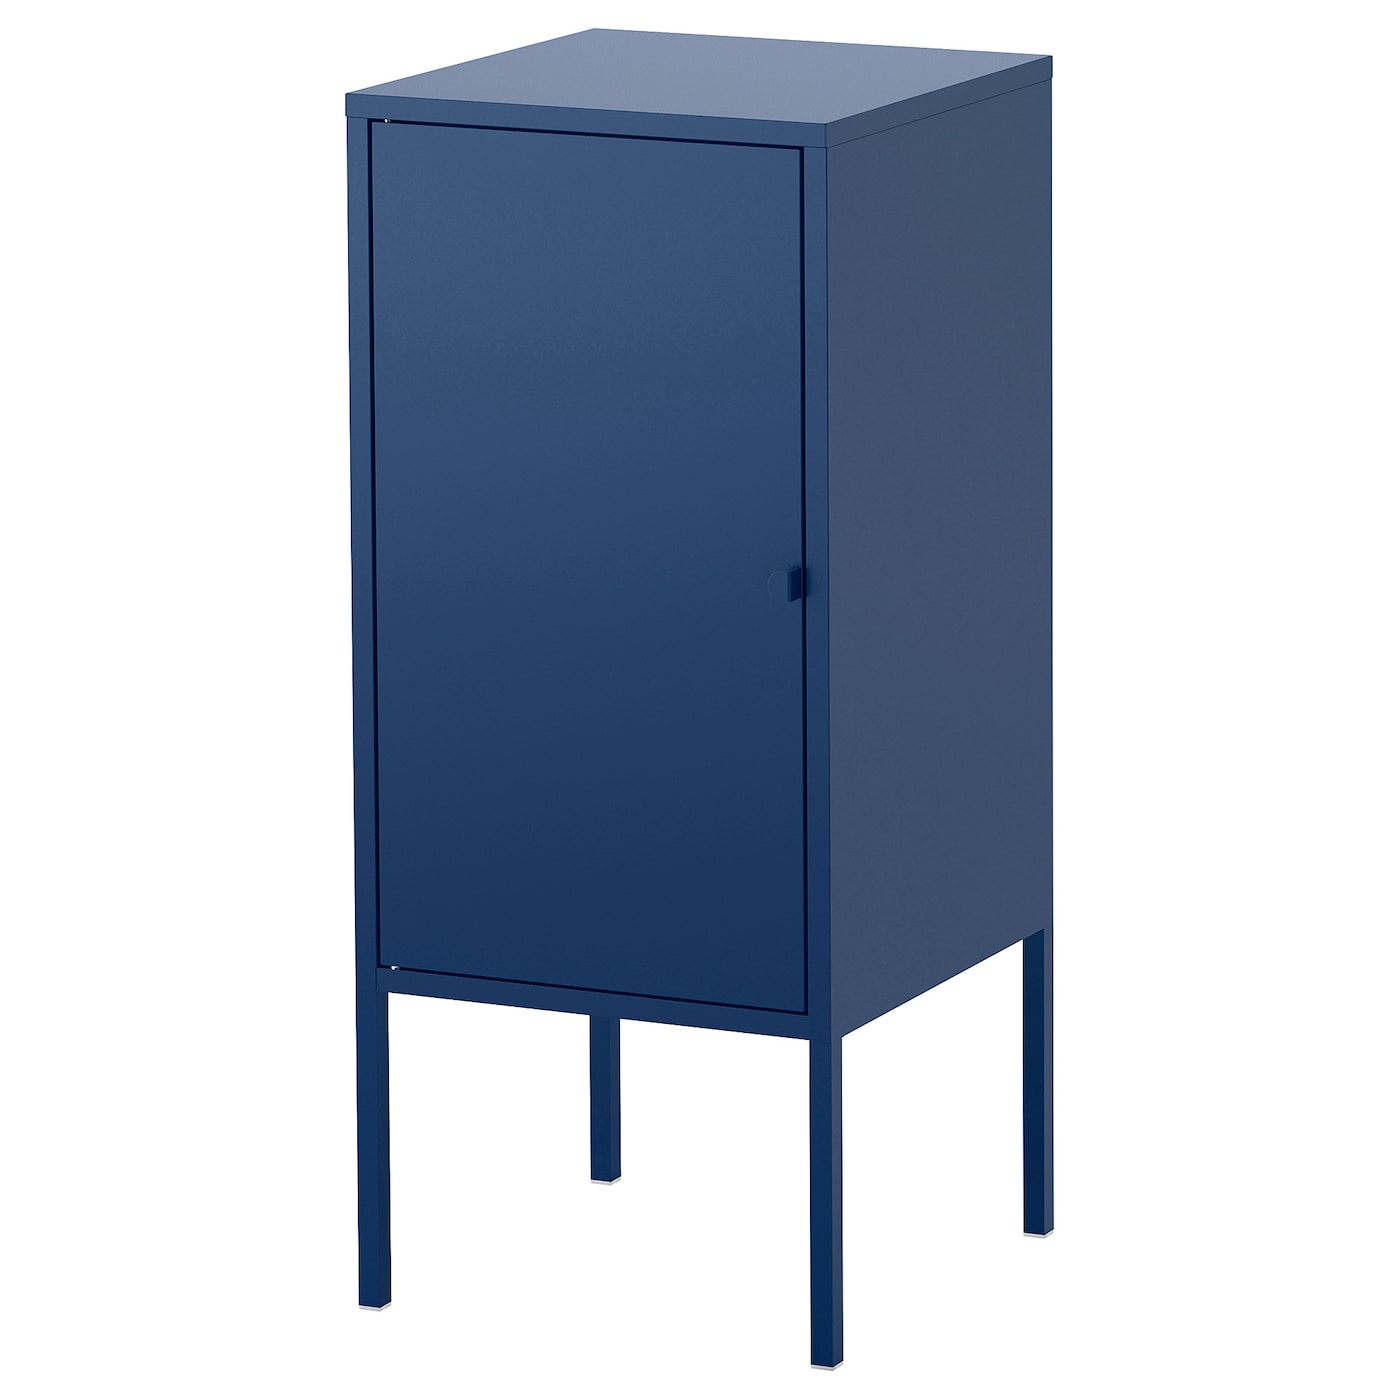 lixhult cabinet metal dark blue 35x60 cm ikea. Black Bedroom Furniture Sets. Home Design Ideas